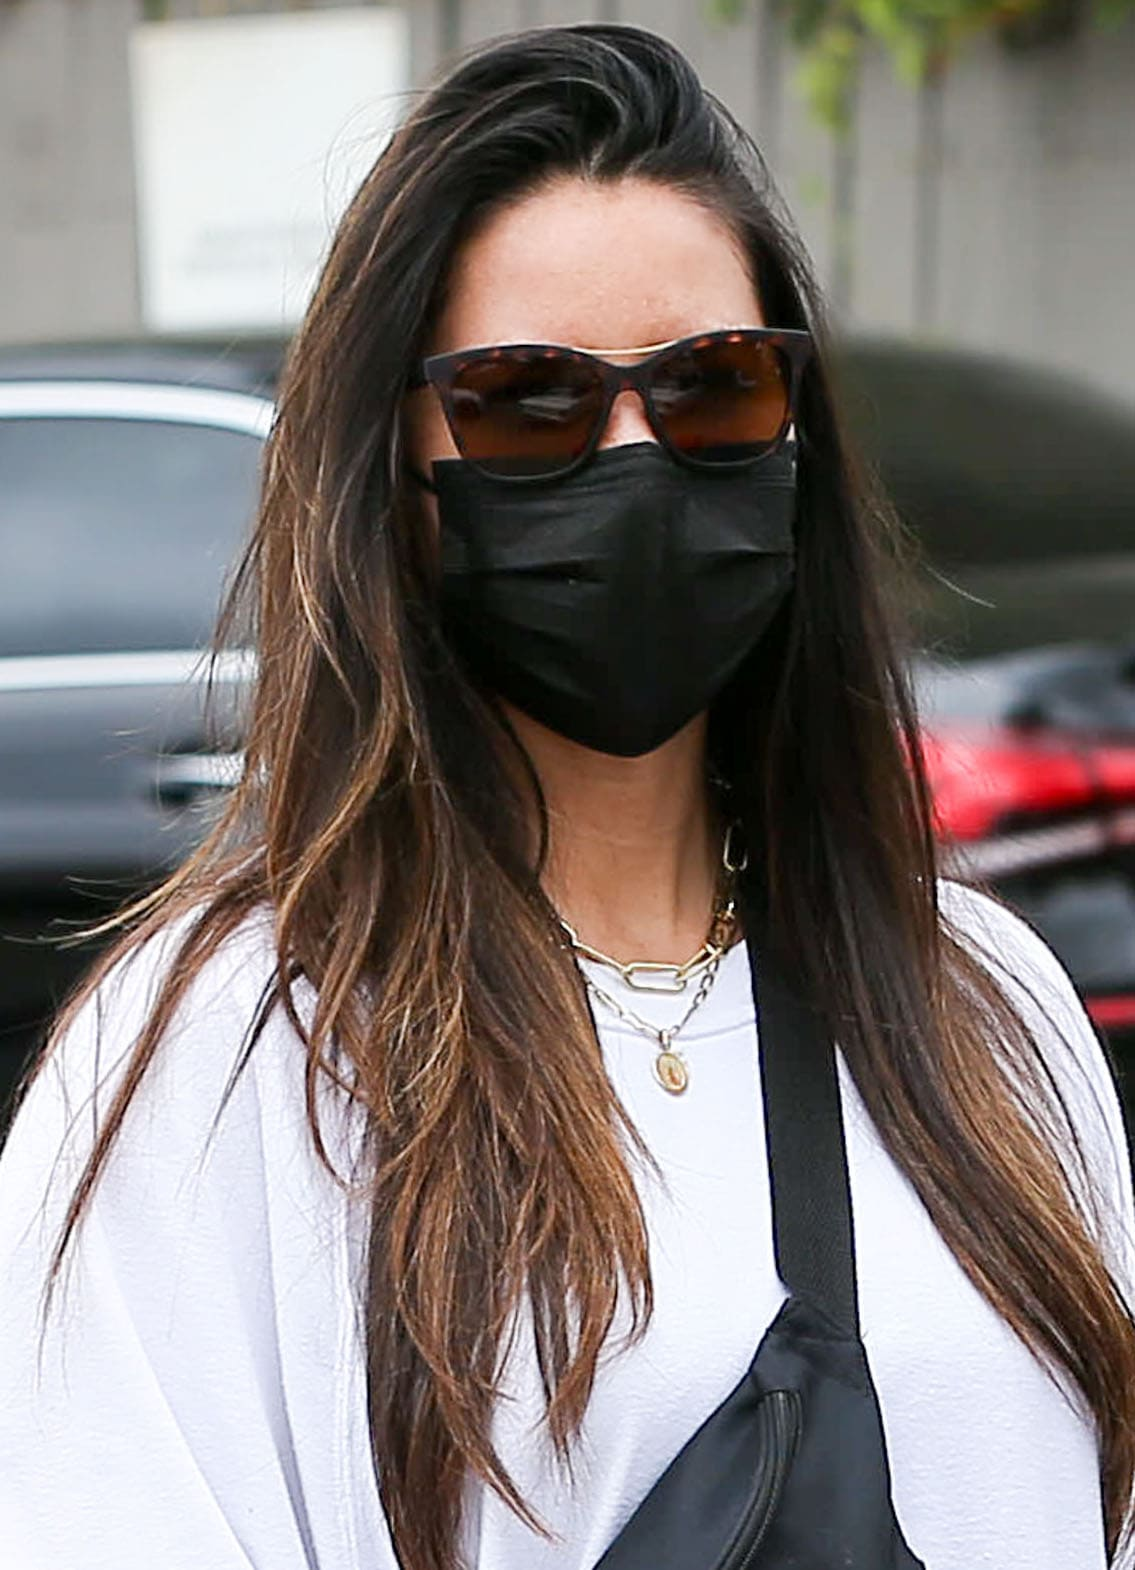 Olivia Munn wears a side-swept hairstyle and covers her eyes with Smith tortoiseshell sunglasses